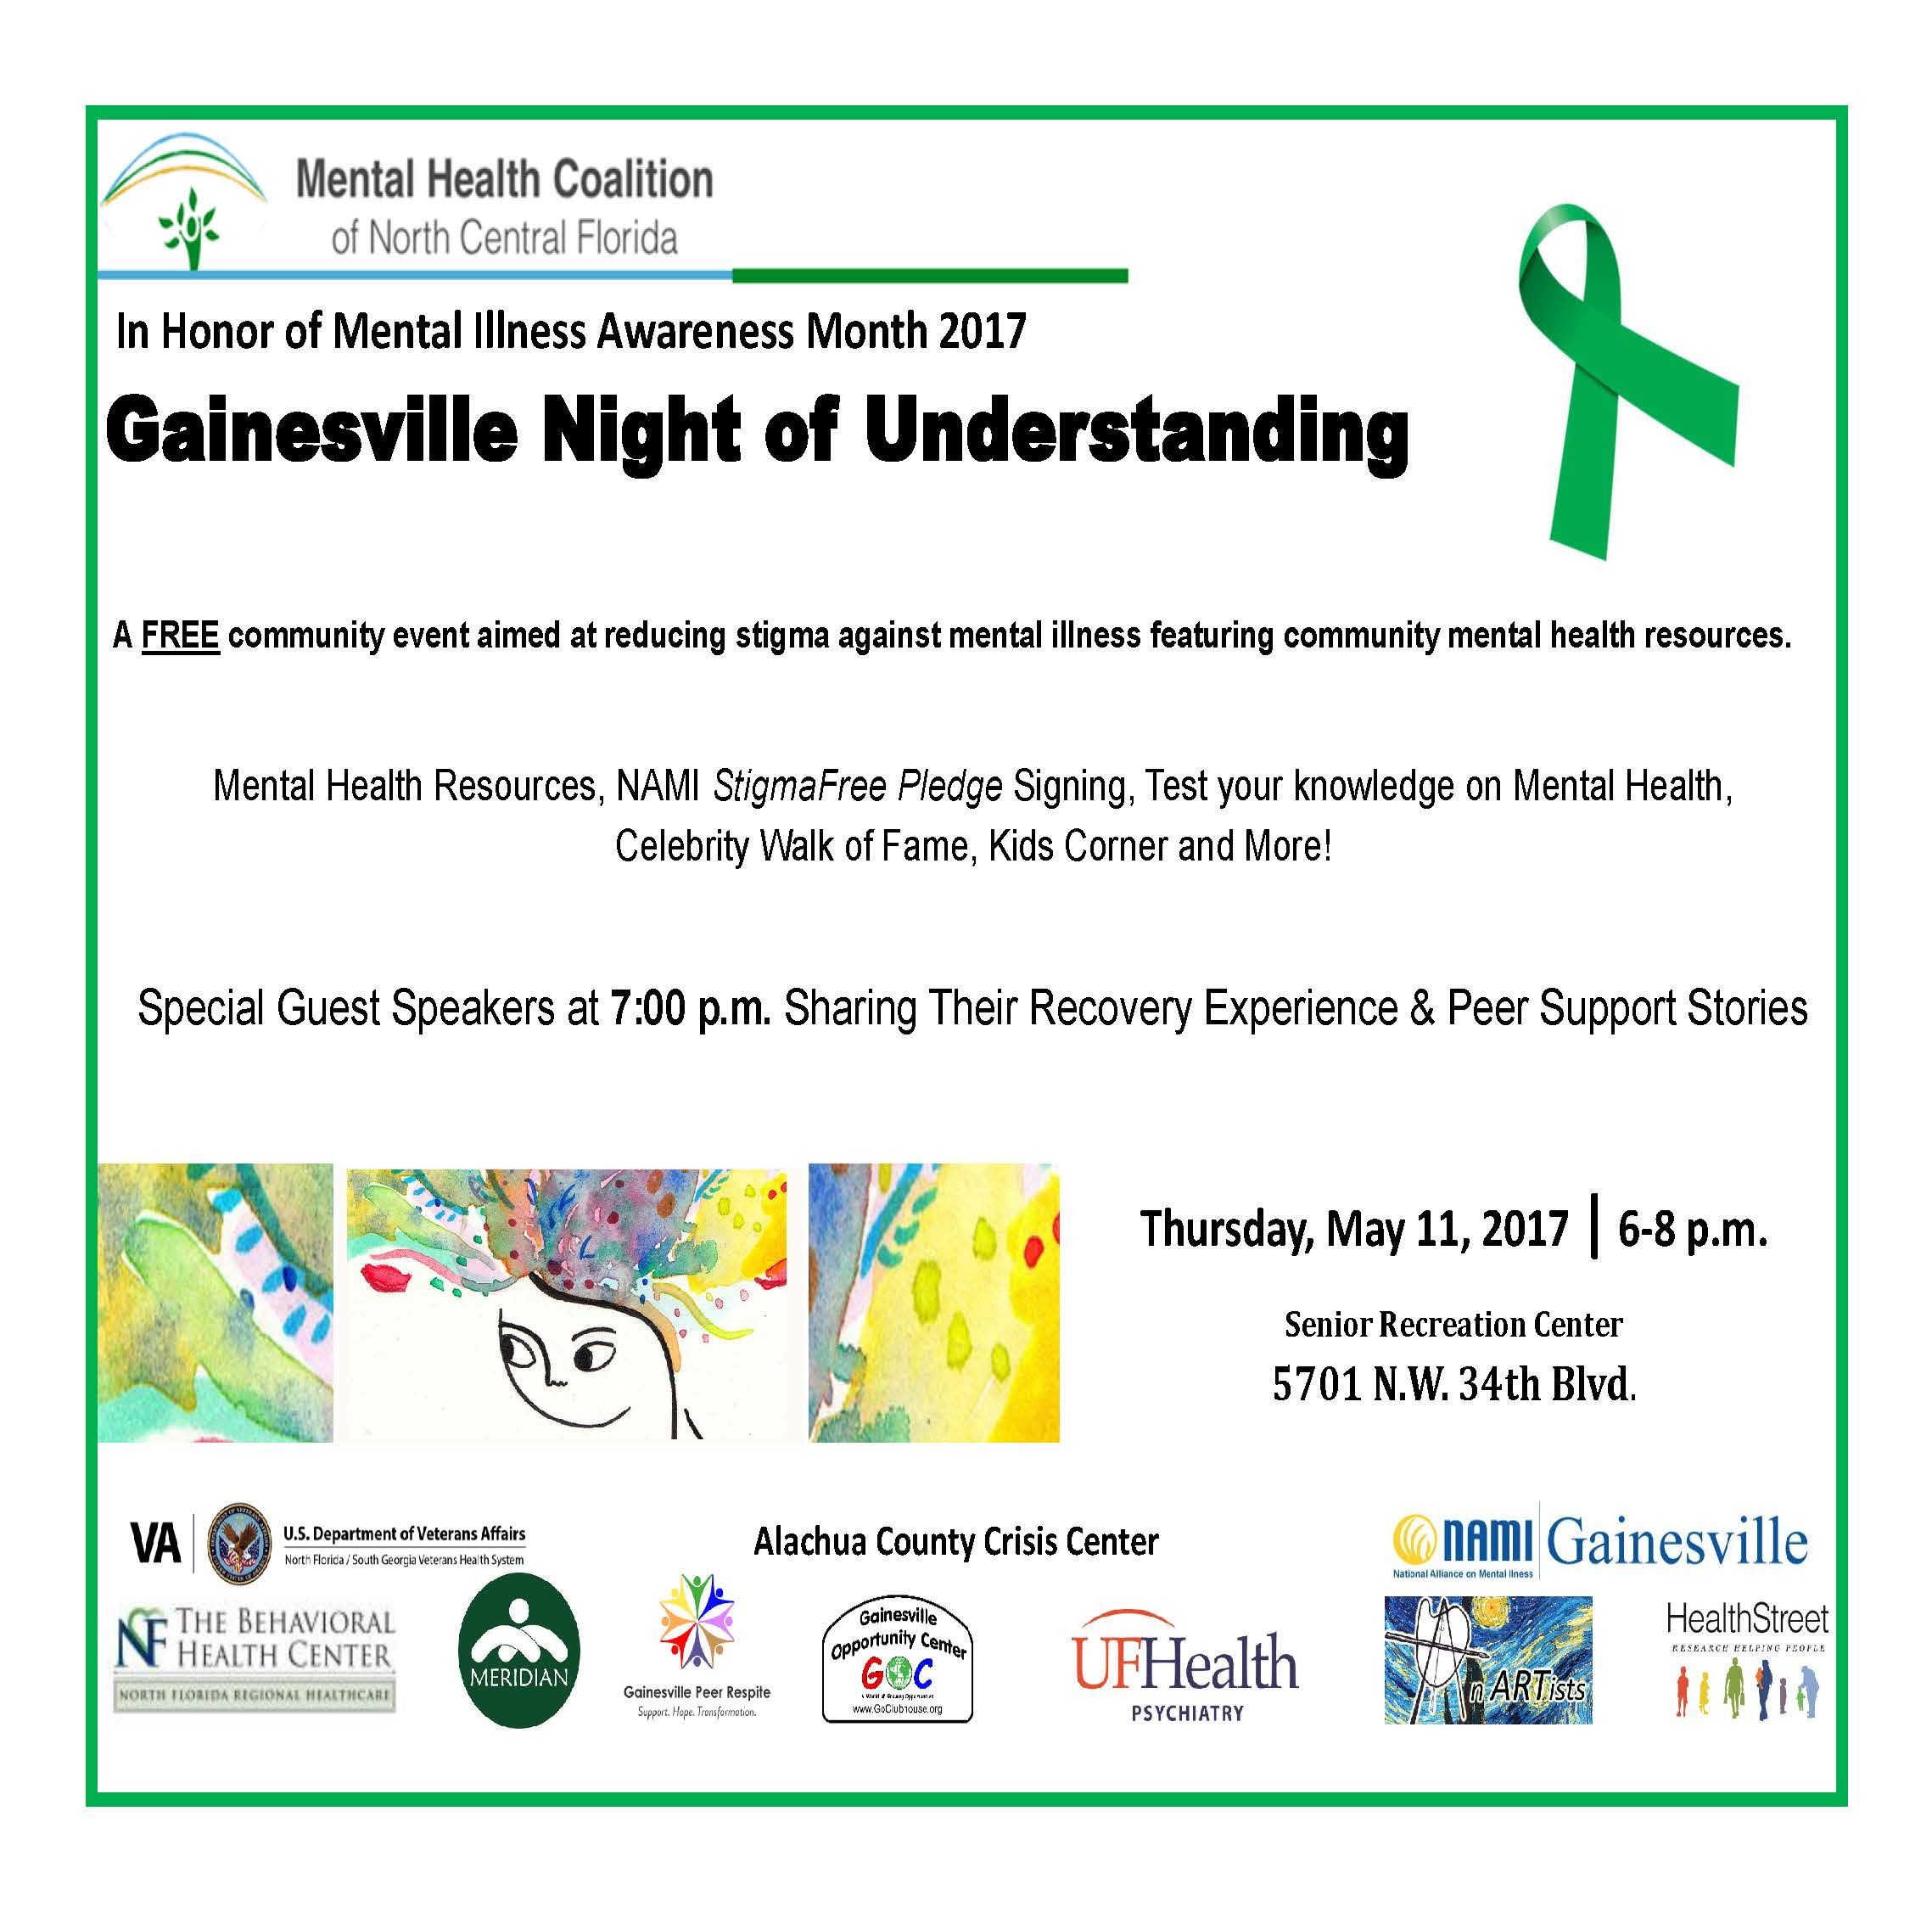 Gainesville Night of Understanding